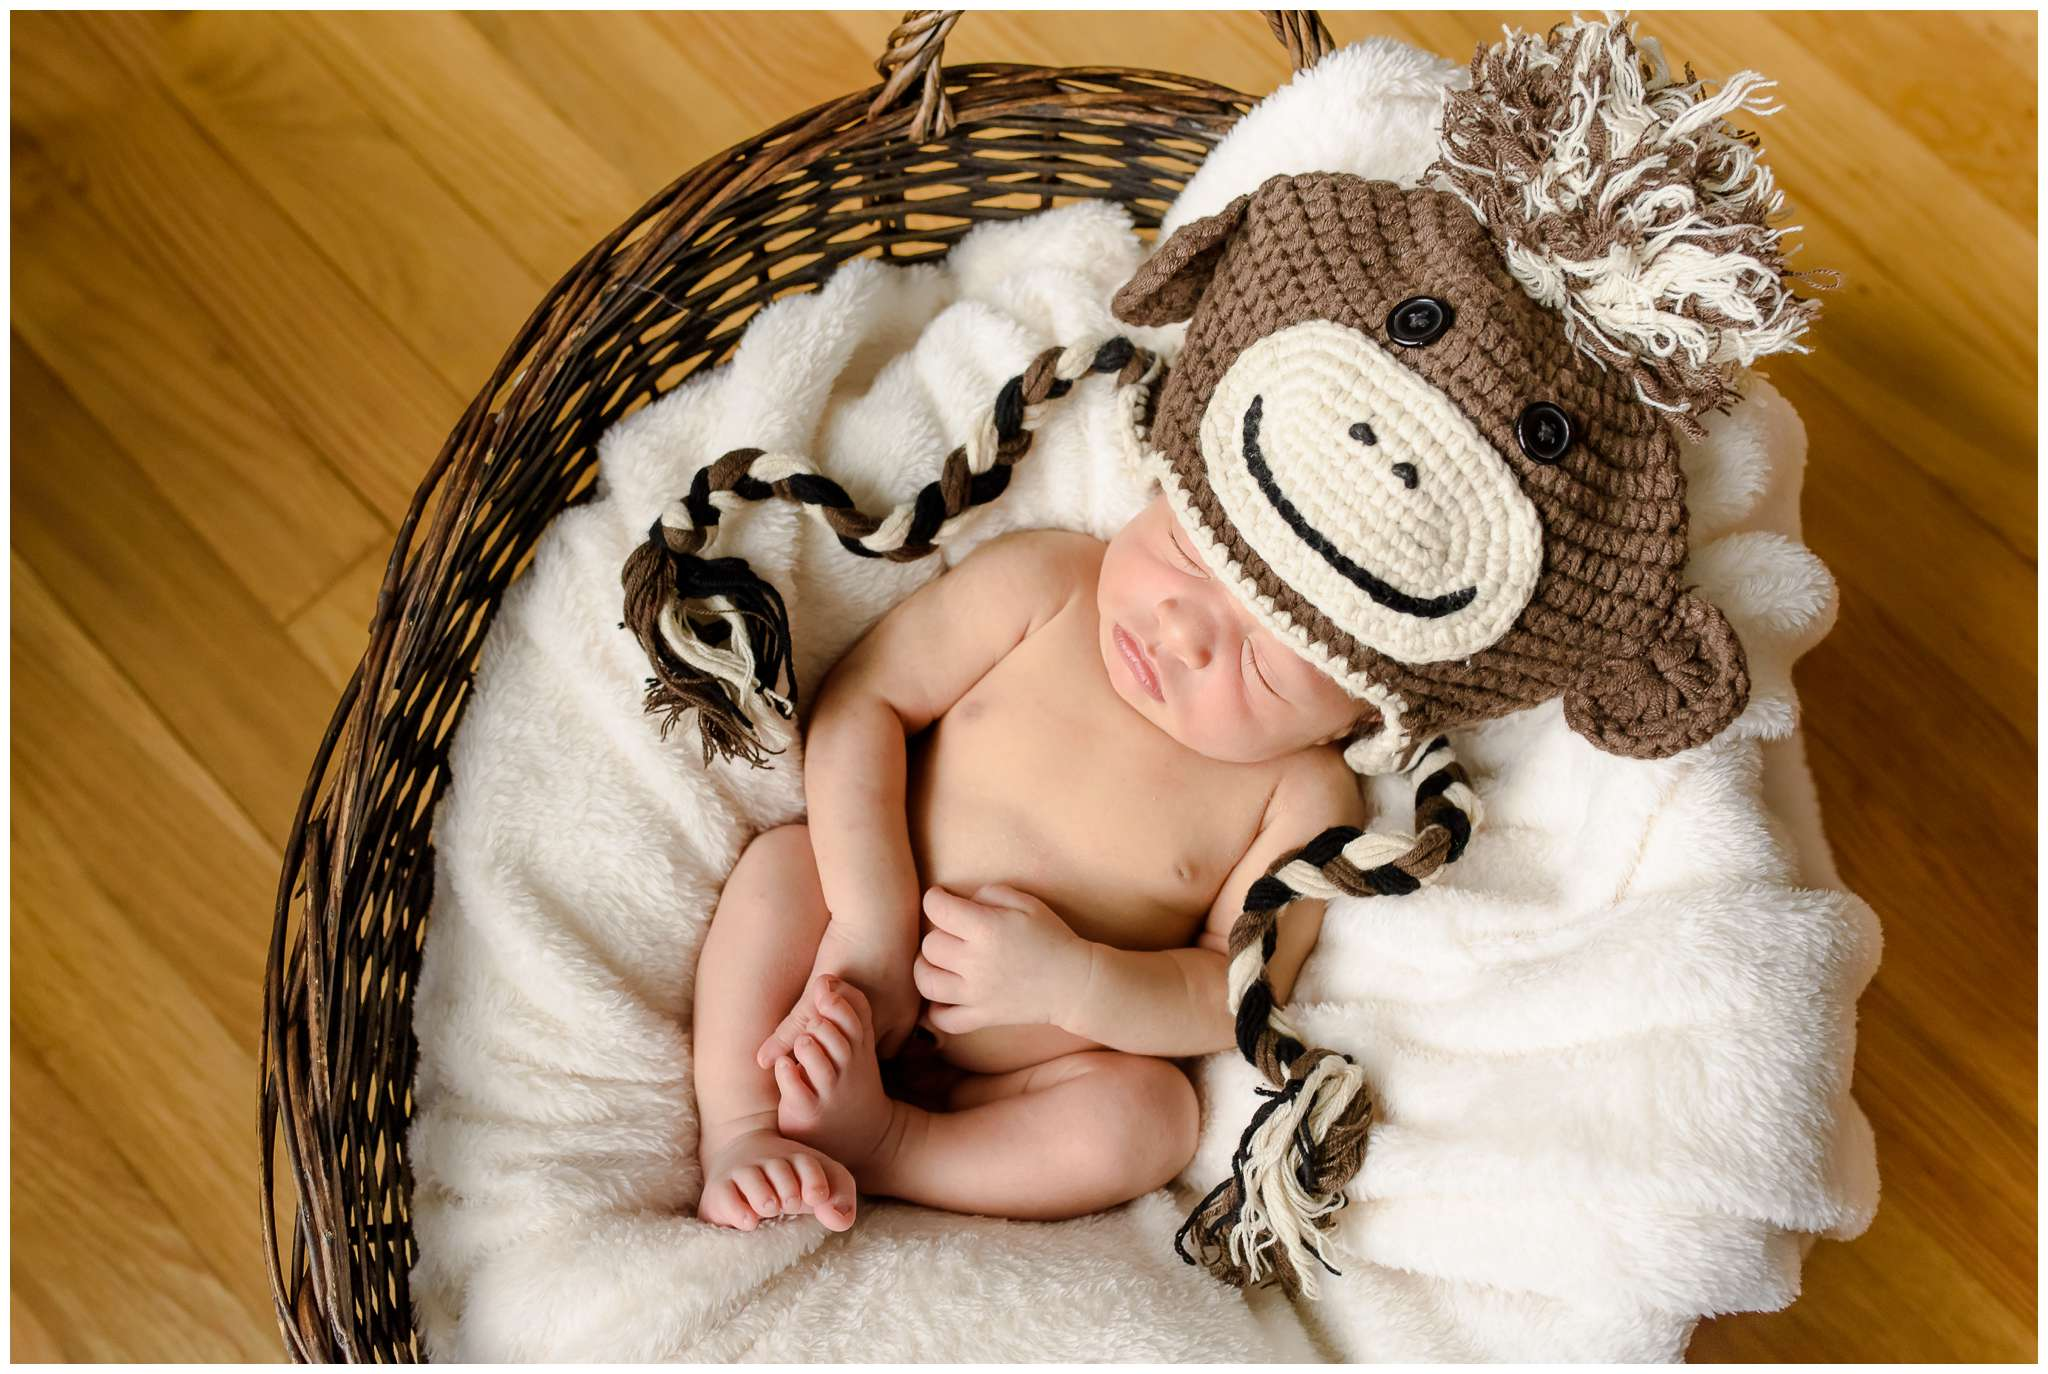 Yes, the monkey hat was a little big... but still adorable on him lol!